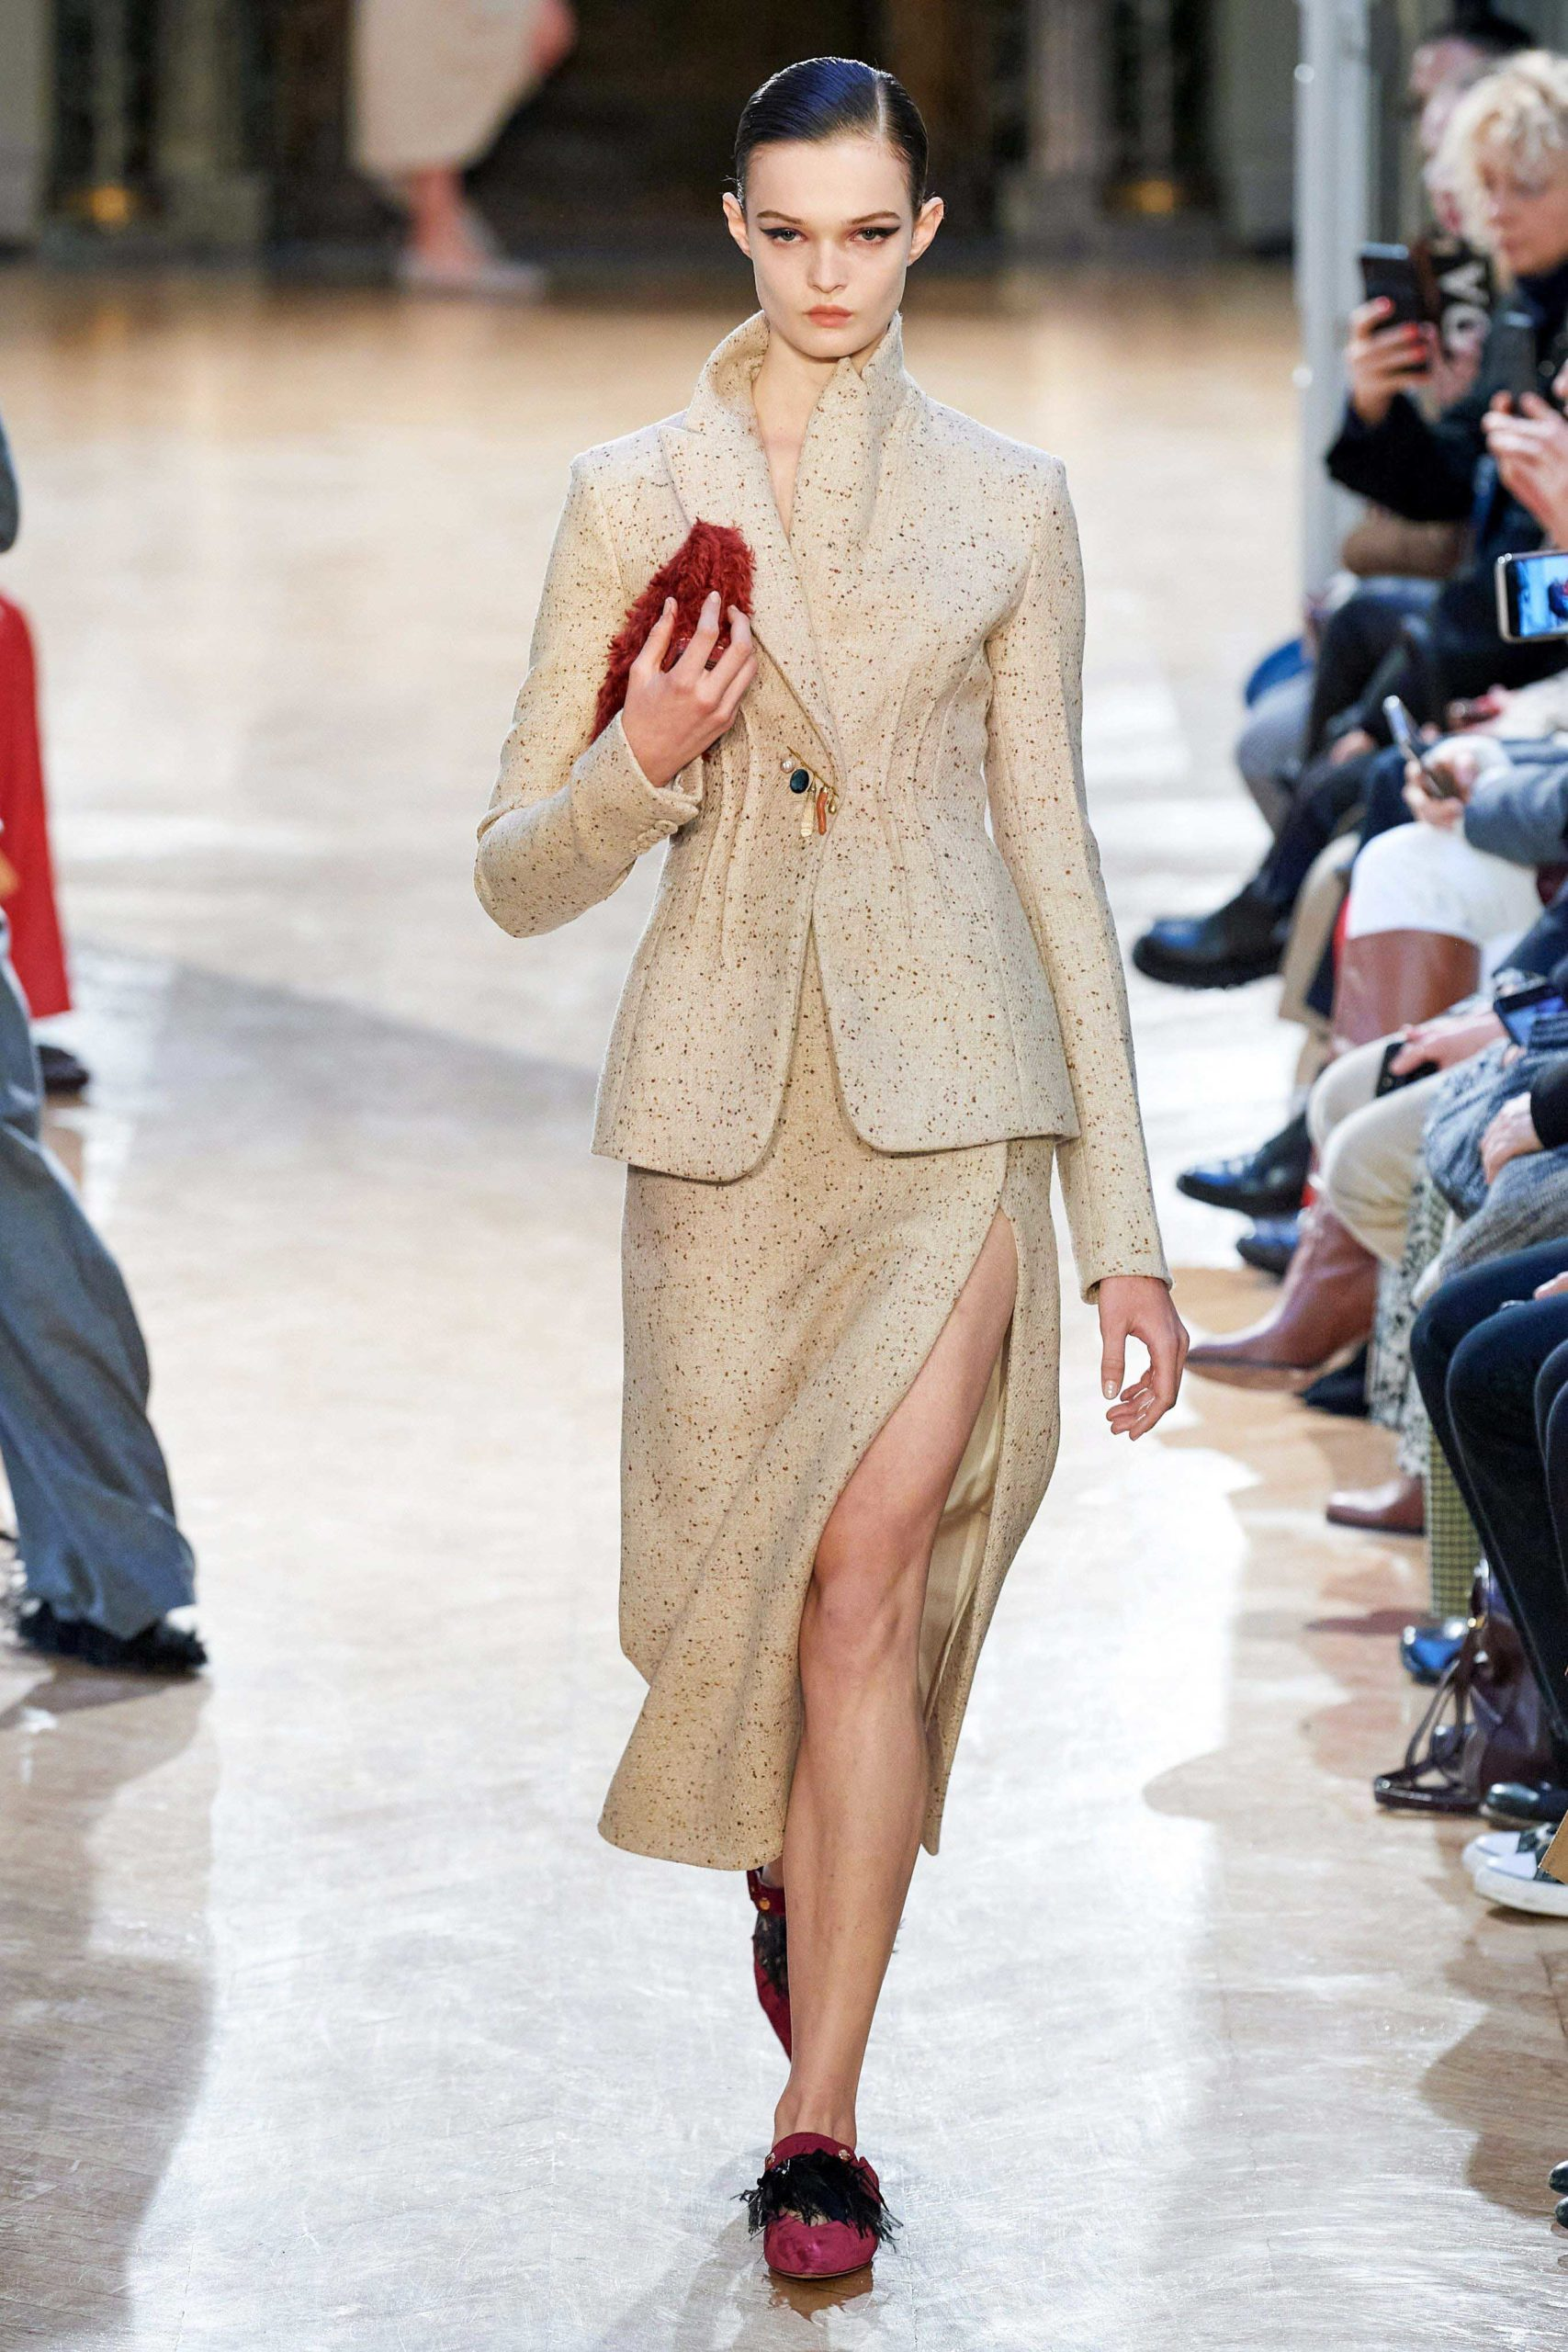 Altuzarra Fall 2020 trends runway coverage Ready To Wear Vogue skirt suit